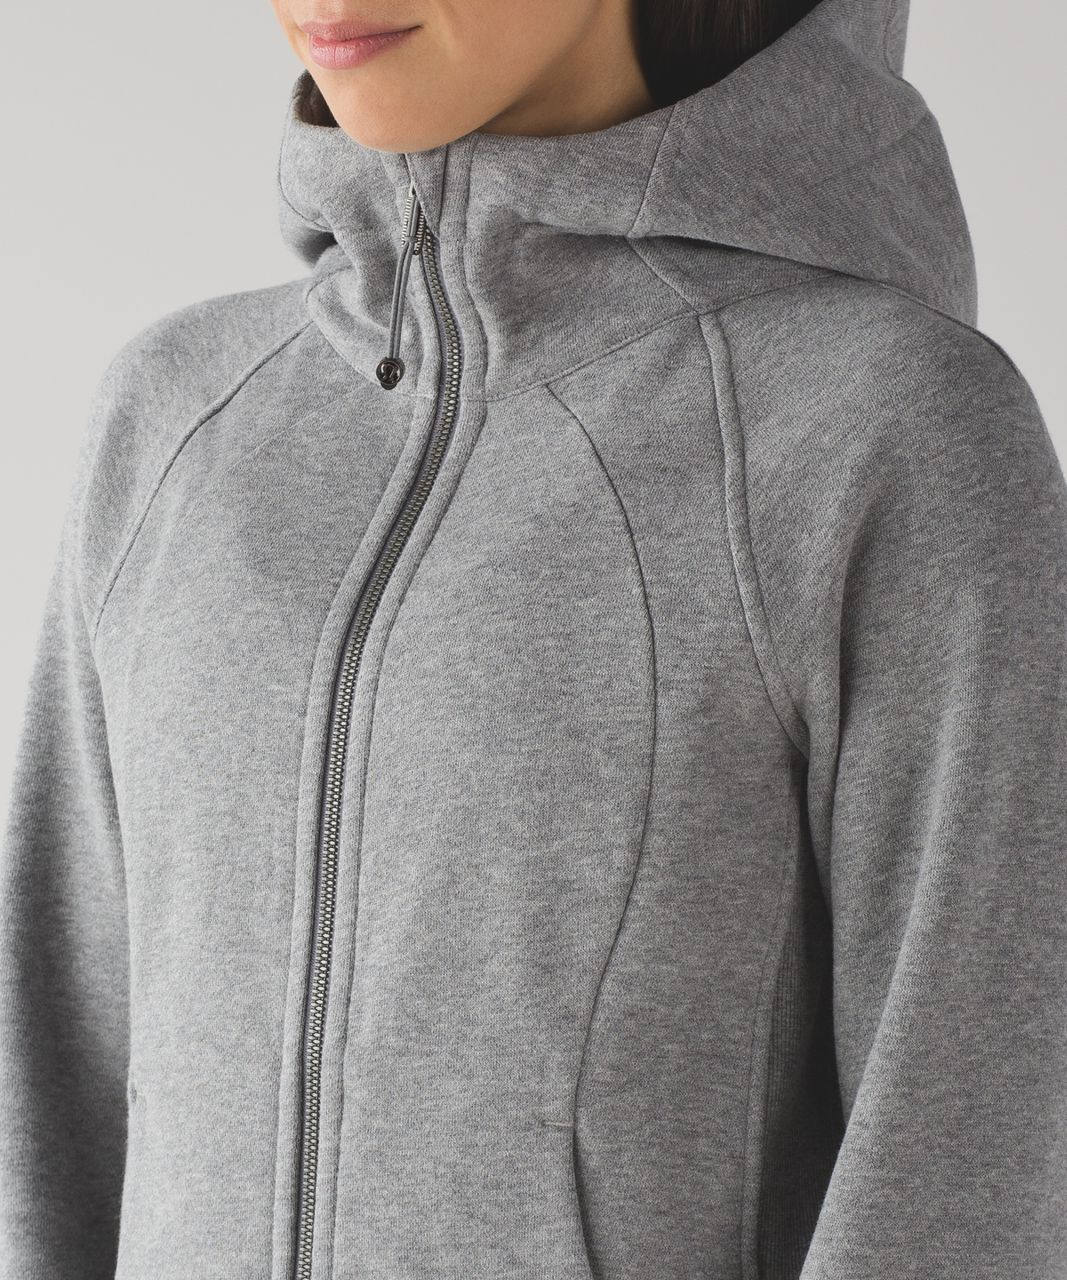 Lululemon Scuba Hoodie *Light Cotton Fleece - Heathered Medium Grey